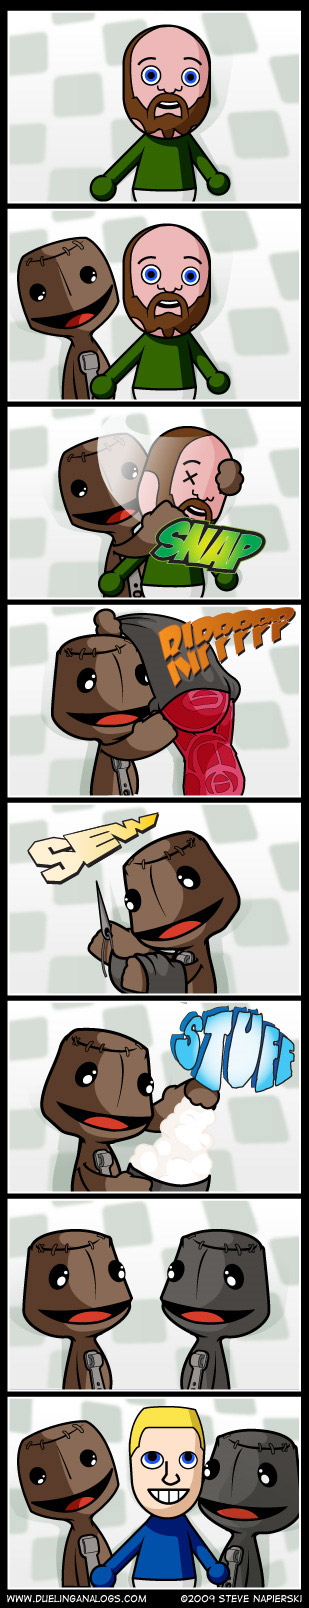 Birth of a Sackboy